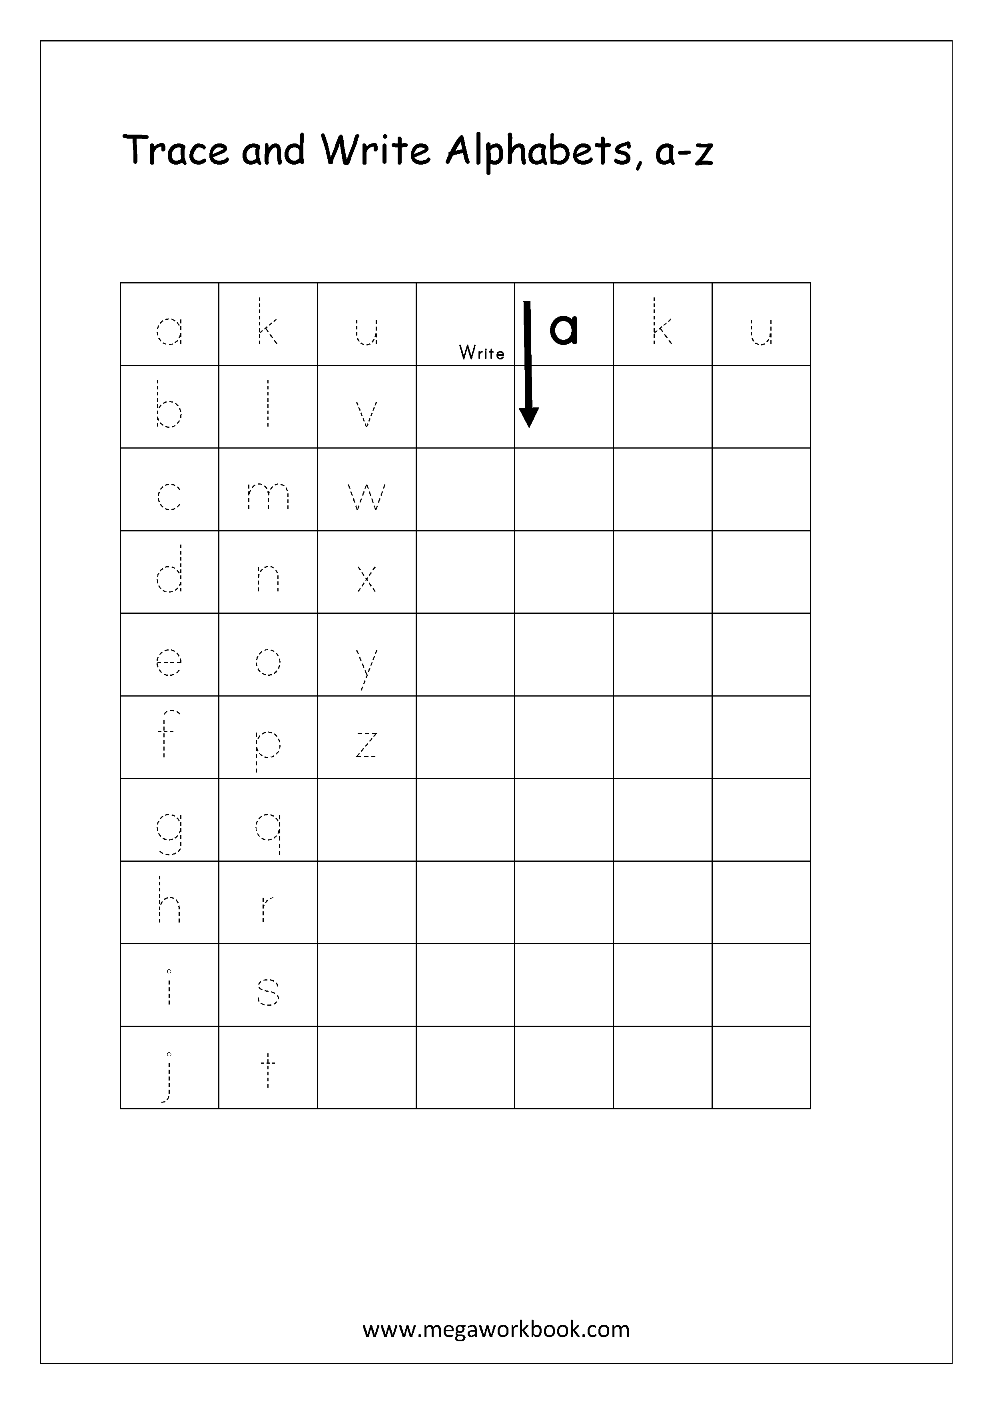 Worksheets Writing The Alphabet Worksheets free english worksheets alphabet writing small letters letter worksheet a z